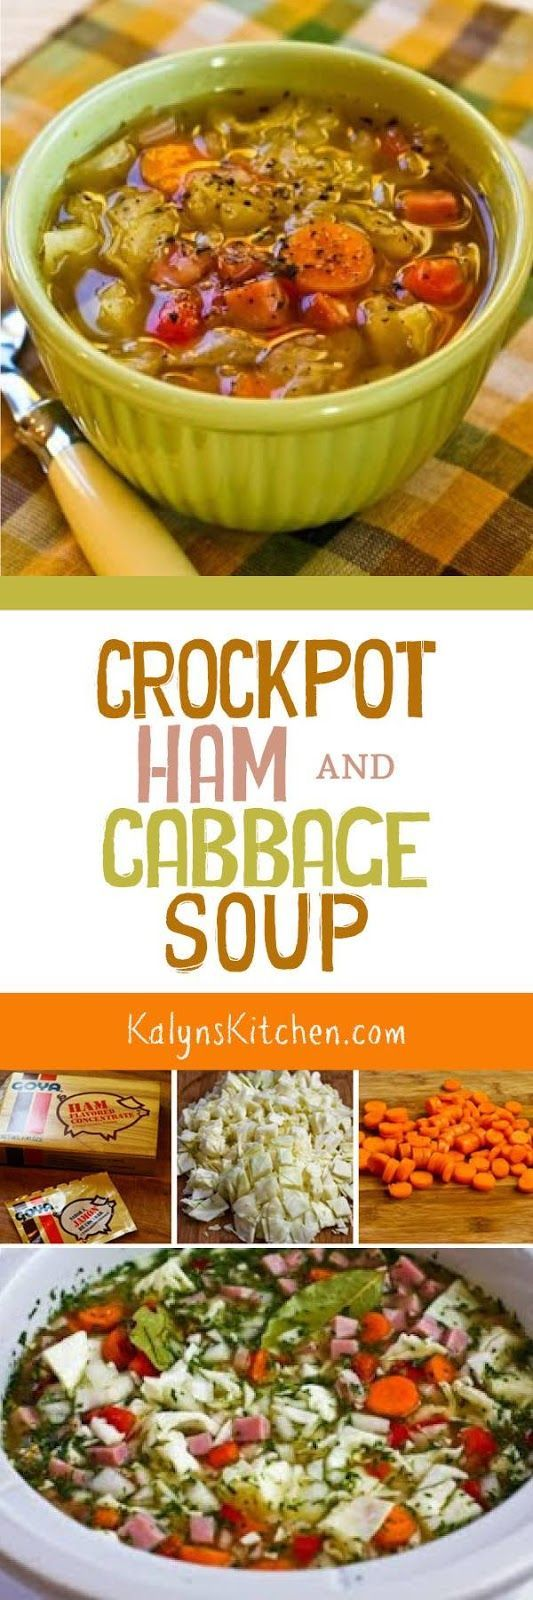 Make this Crockpot (or Stovetop) Ham and Cabbage Soup with Red Bell Pepper with leftover holiday ham, or buy some ham from the deli to make this delicious soup. If you want the lowest-carb version, omit the carrots and the soup will still be delicious!  [found on KalynsKitchen.com]